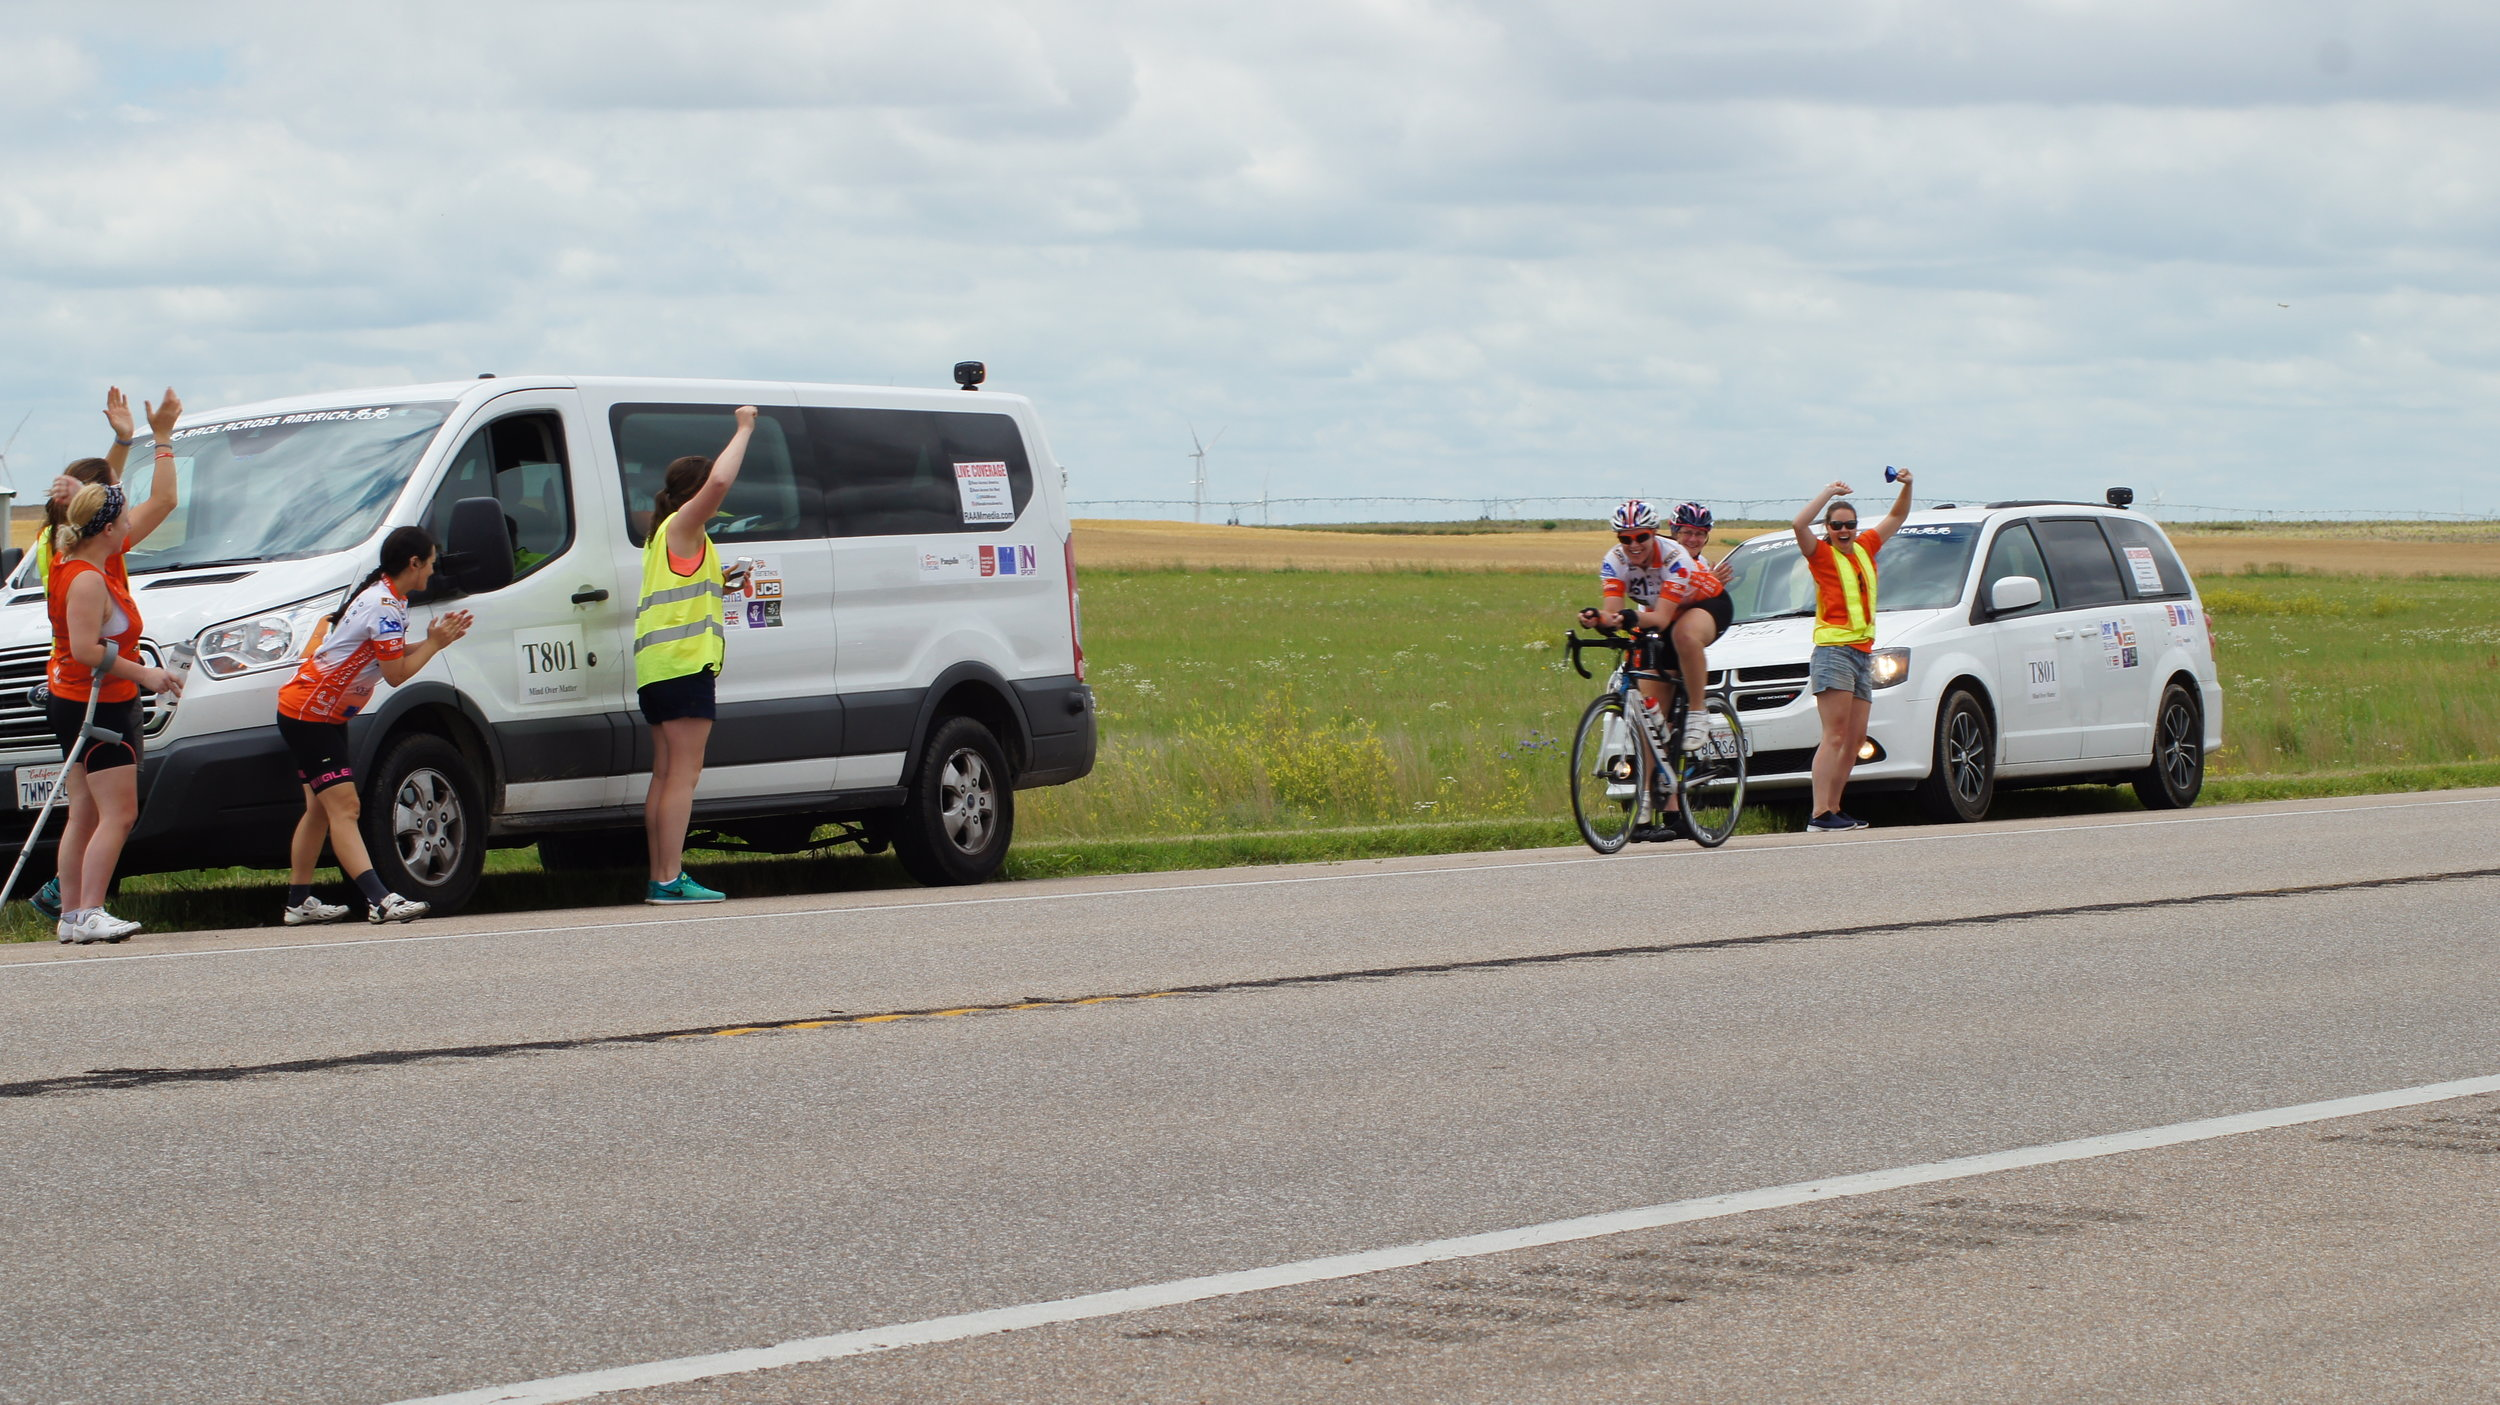 The 'Blue Pod' team celebrating the half way point of the Race Across America